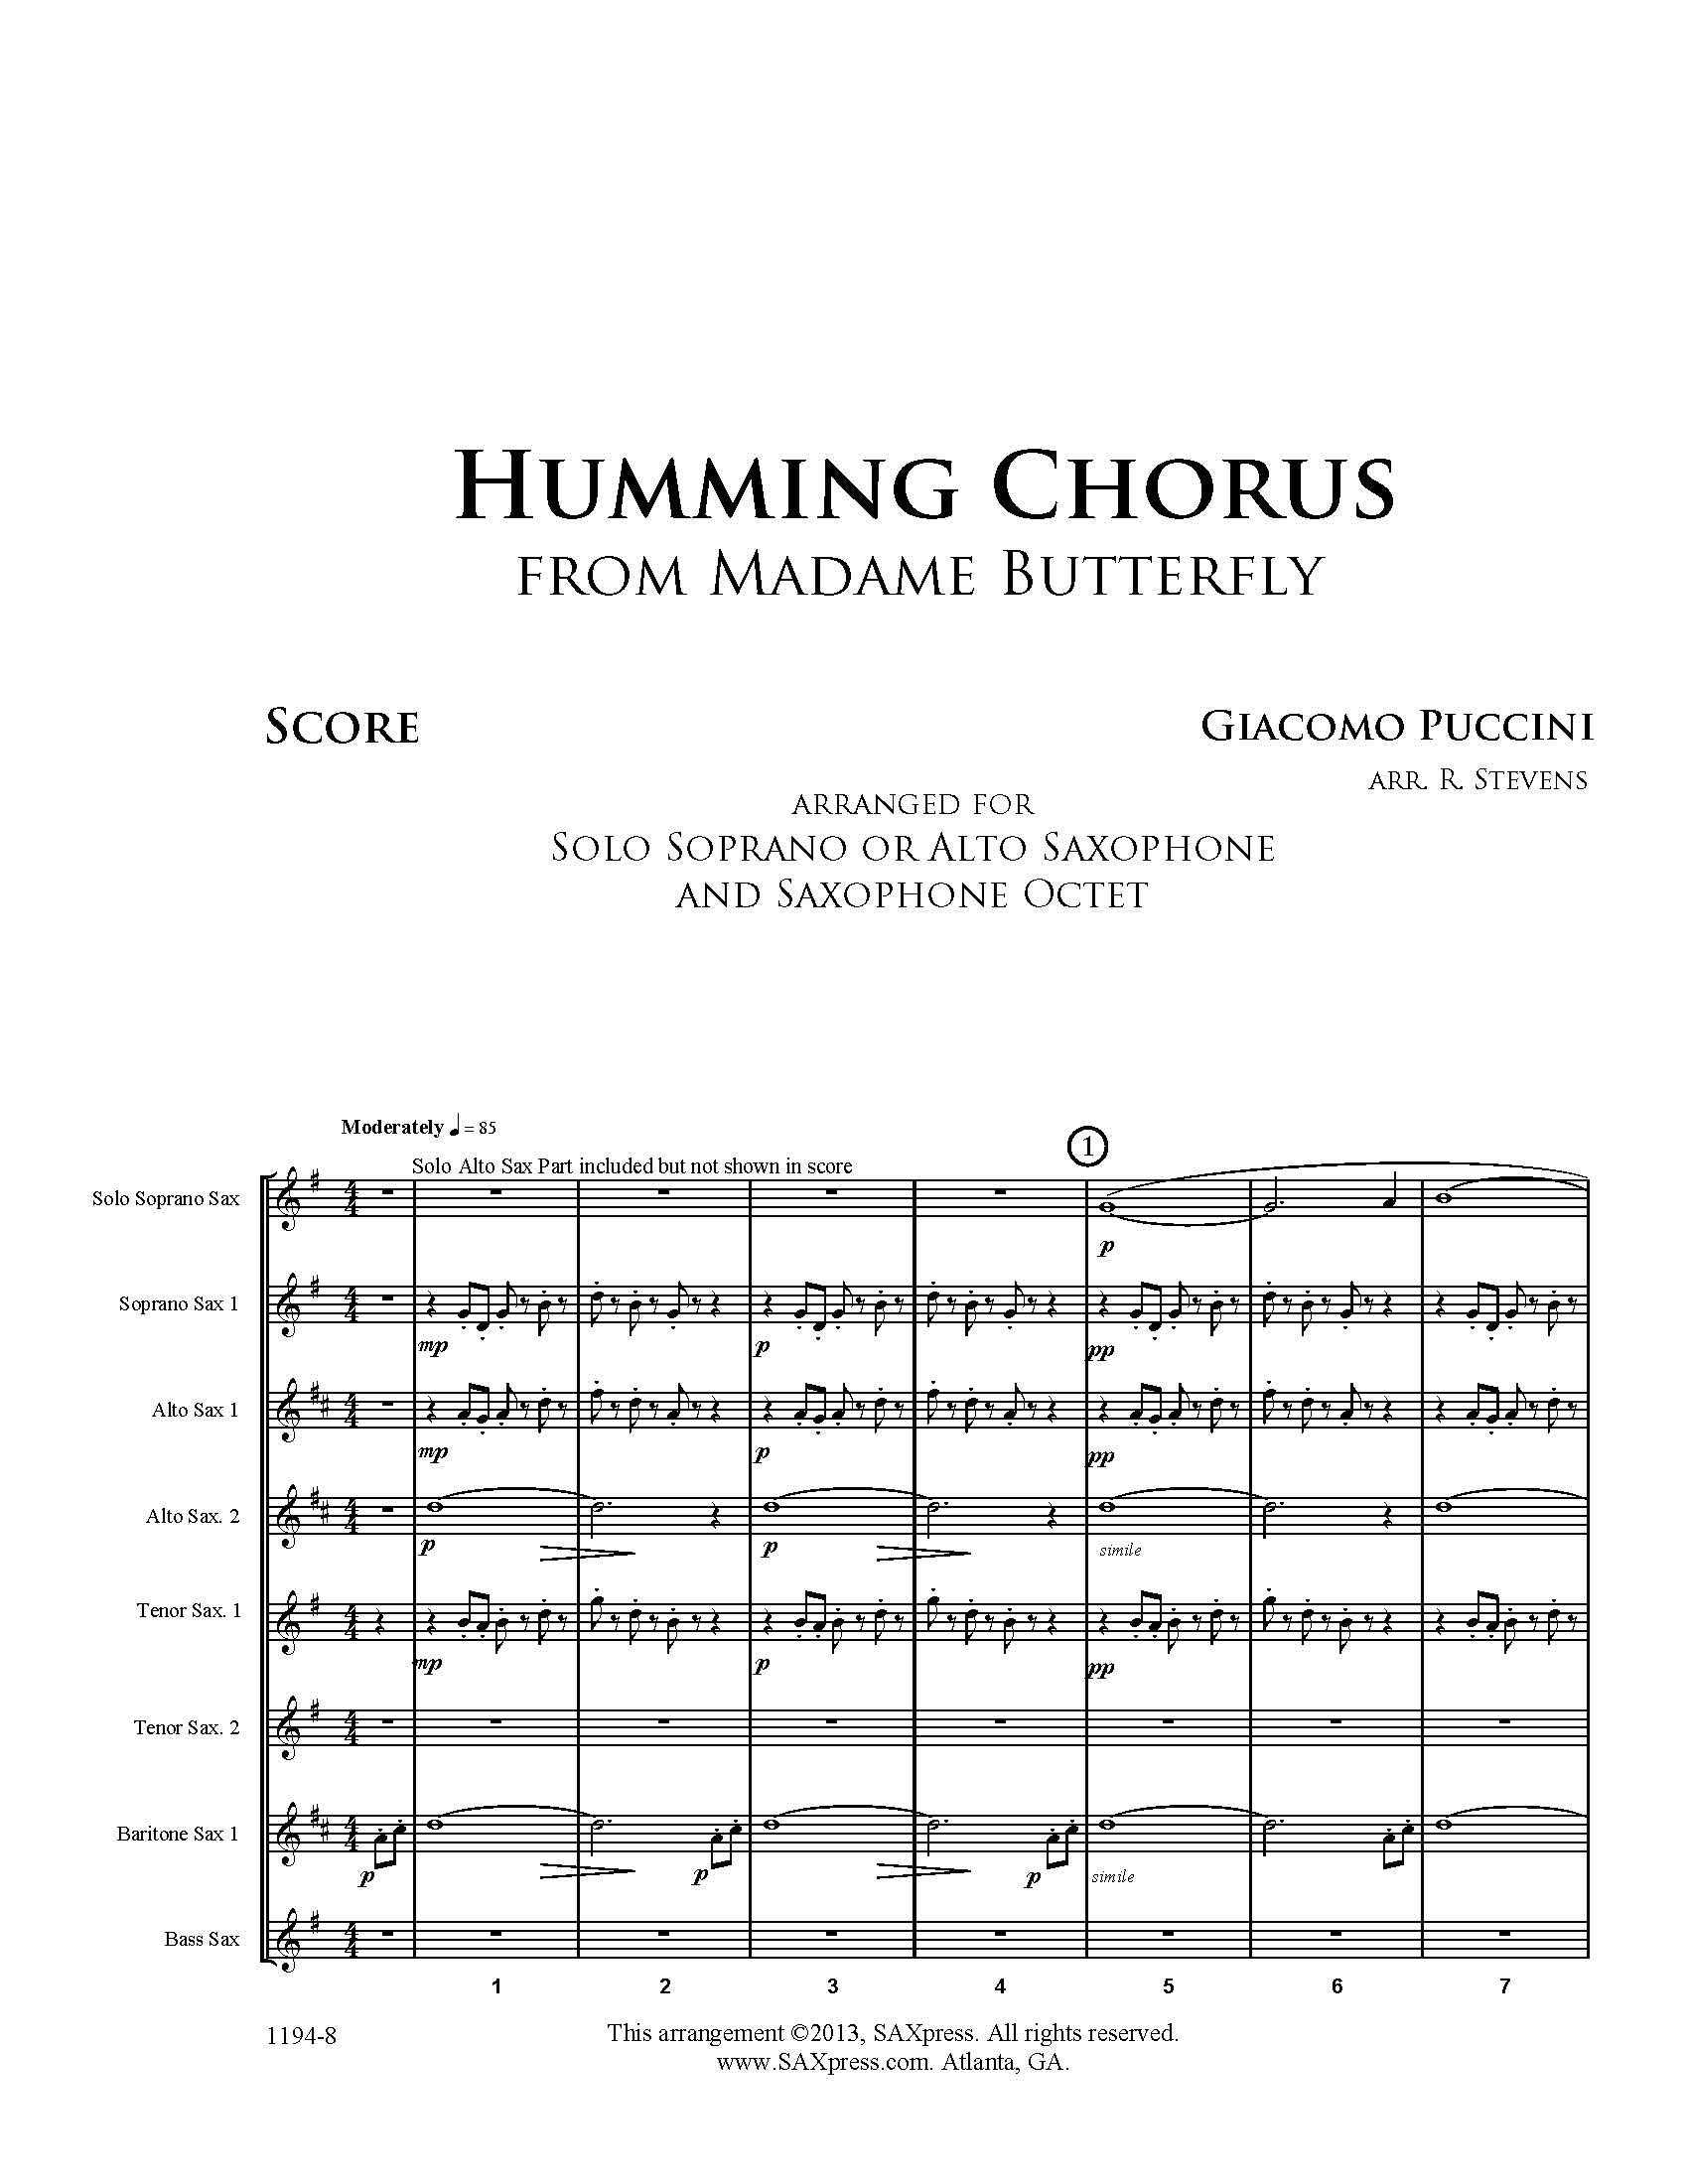 Humming Chorus from Madame Butterfly, Puccini, for Saxophone